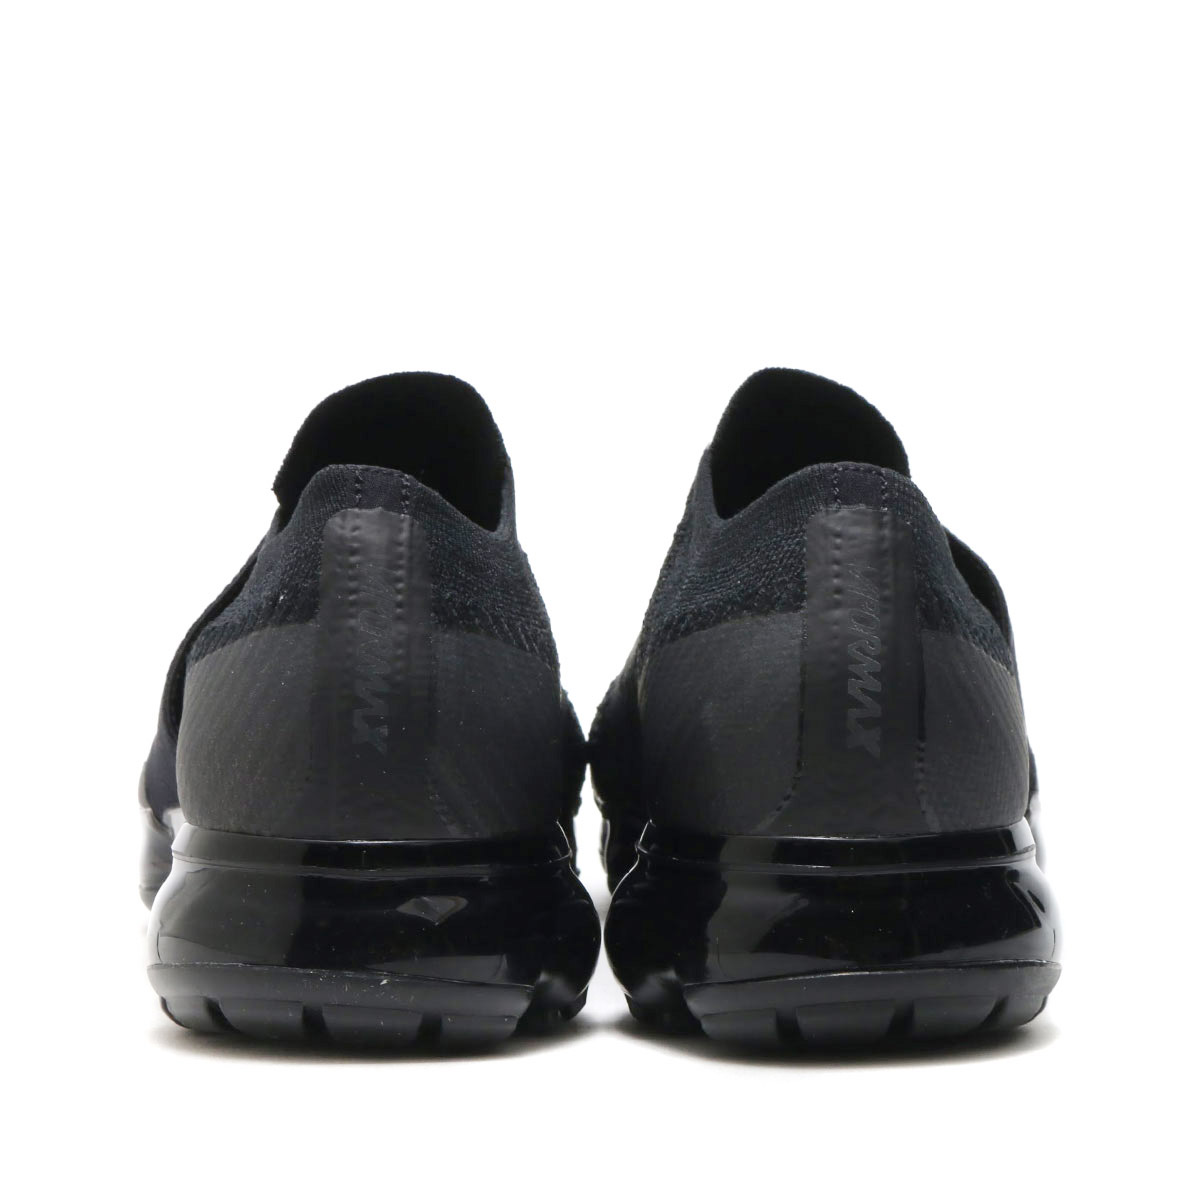 6620303869655 NIKE WMNS AIR VAPORMAX FK MOC (Nike women air vapor max fried food knit  mock) (BLACK ANTHRACITE) 18SP-S